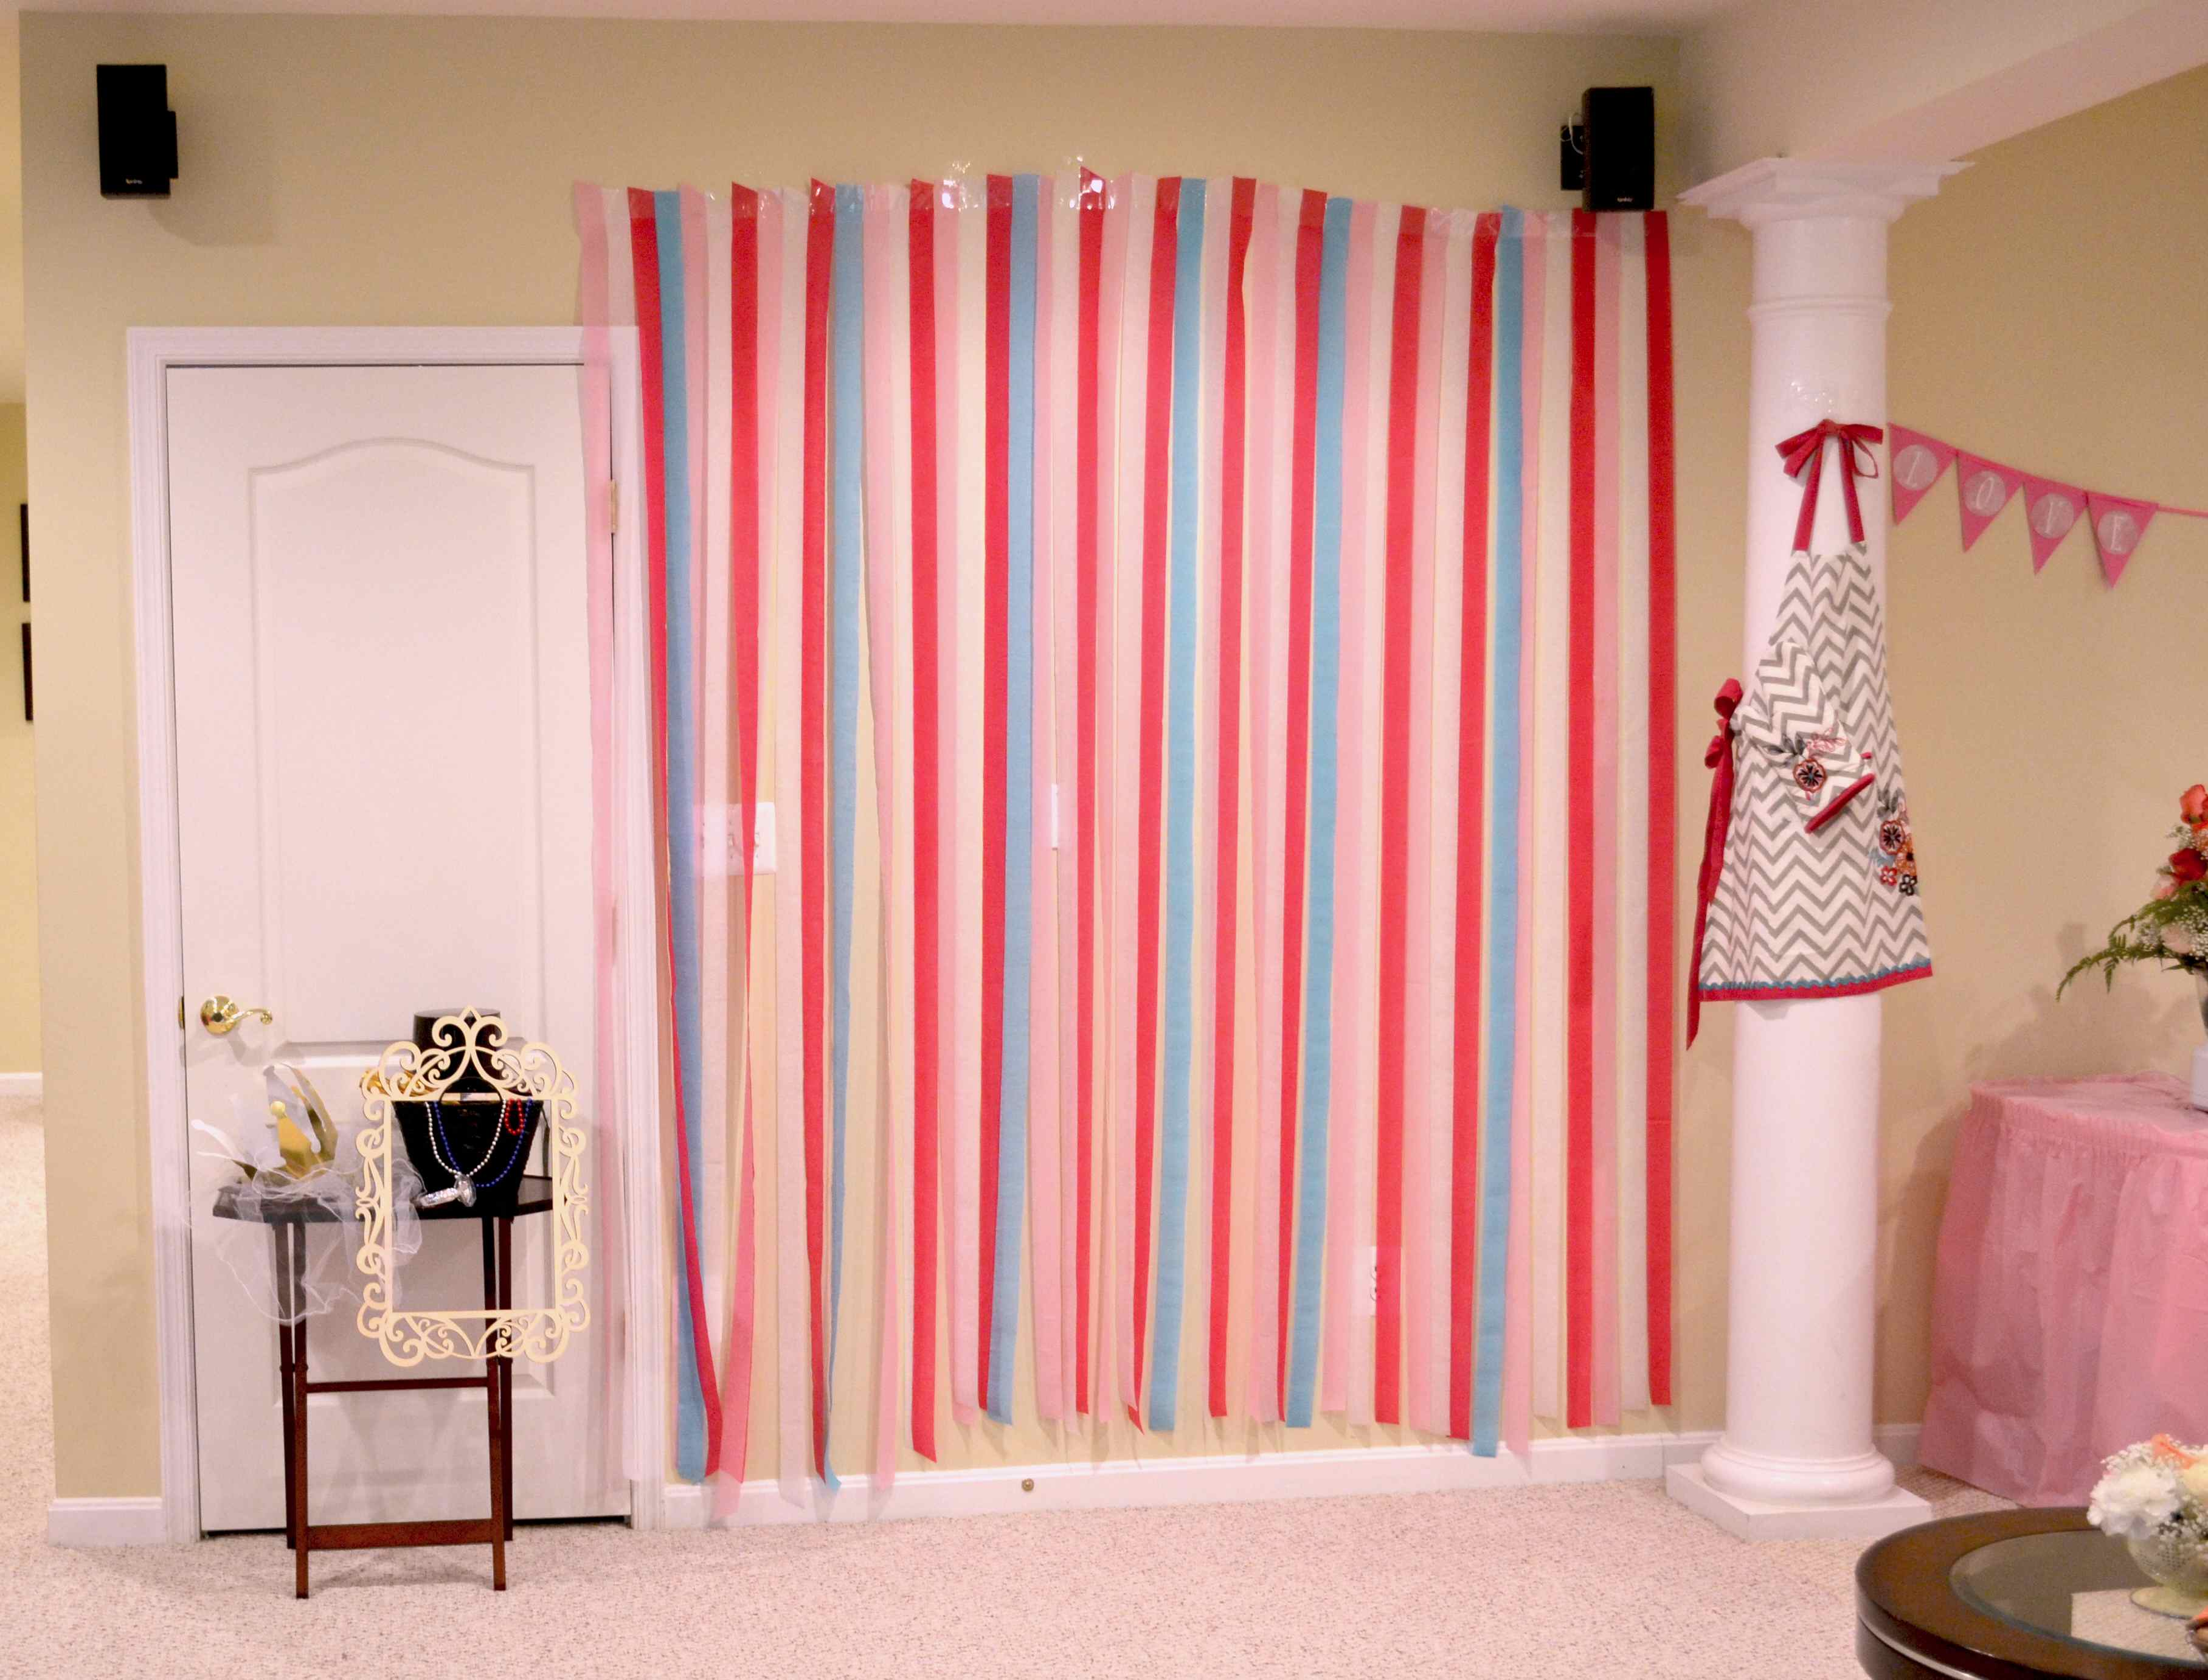 ... photo booth diy backdrop stand 20 diy photography backdrop stand pvc pipe ...